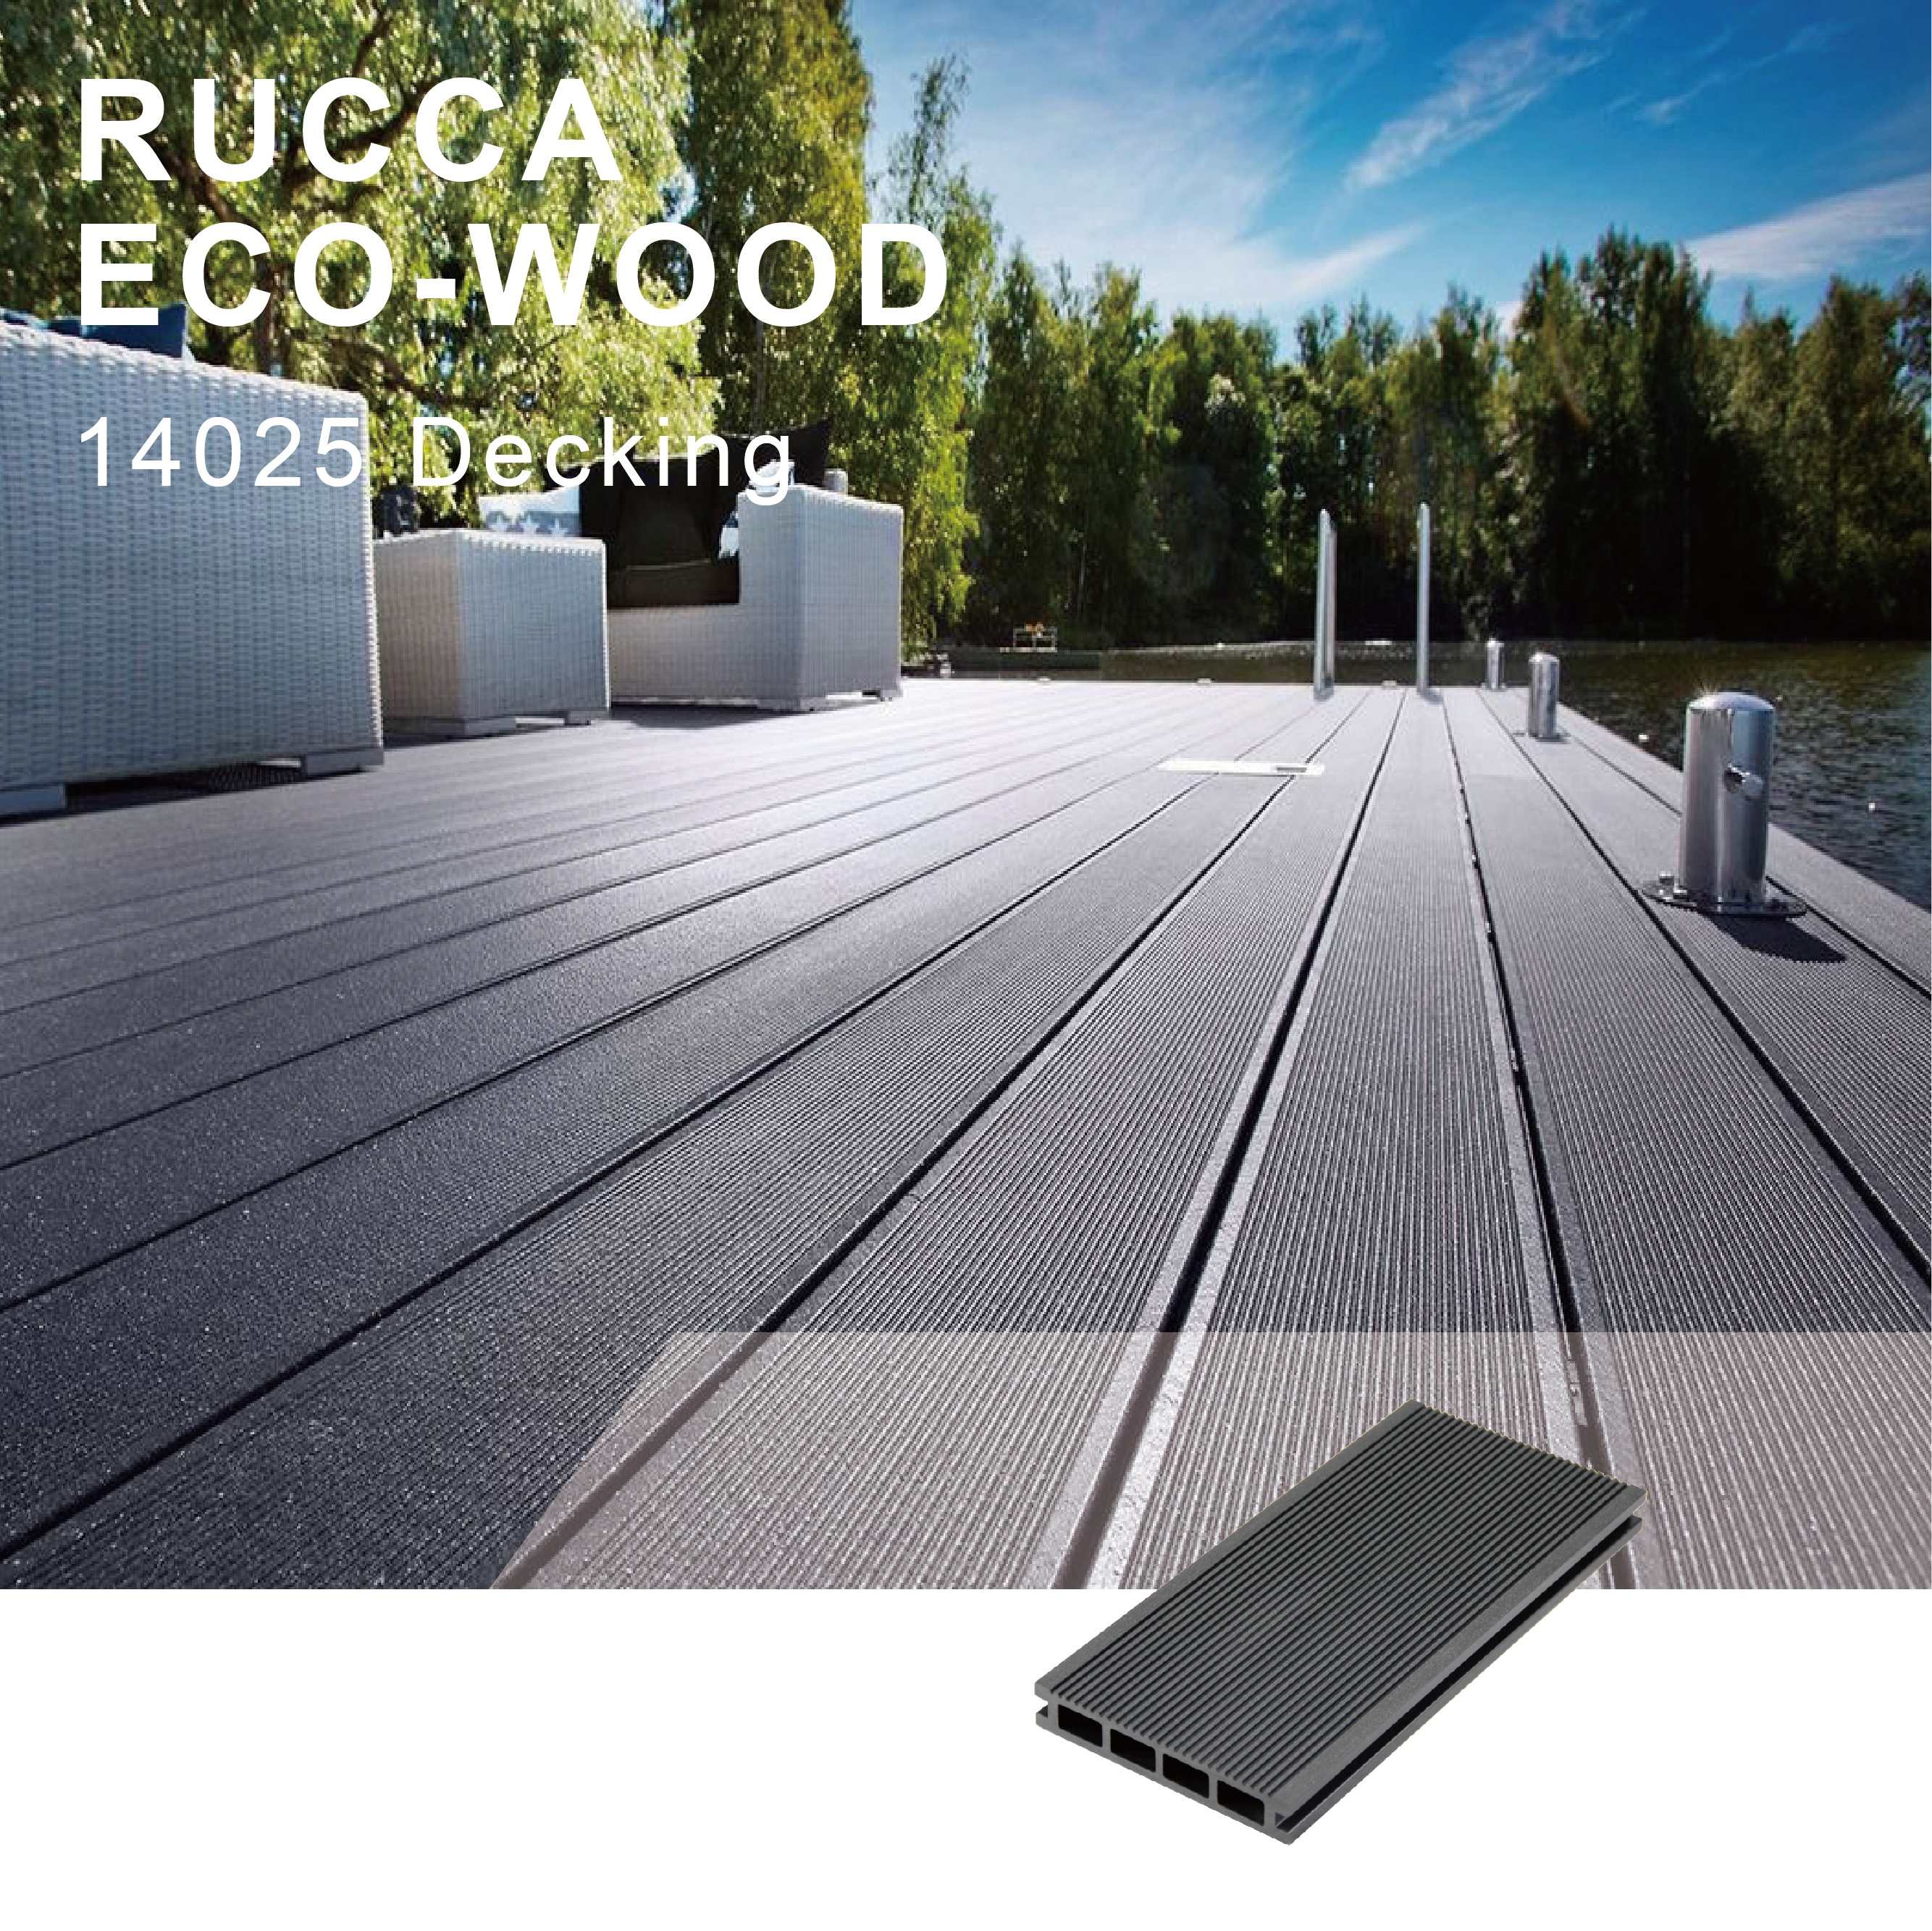 Rucca Grey WPC/PE Wood Plastic Composite Outdoor Engineered Floating Decking